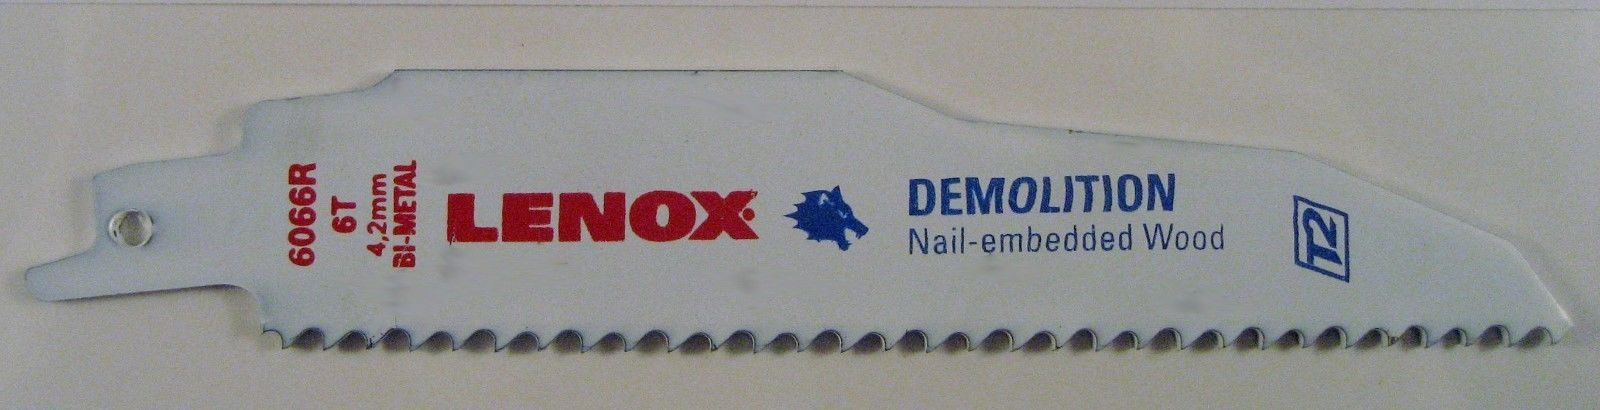 Primary image for Lenox Demolition Reciprocating Blade